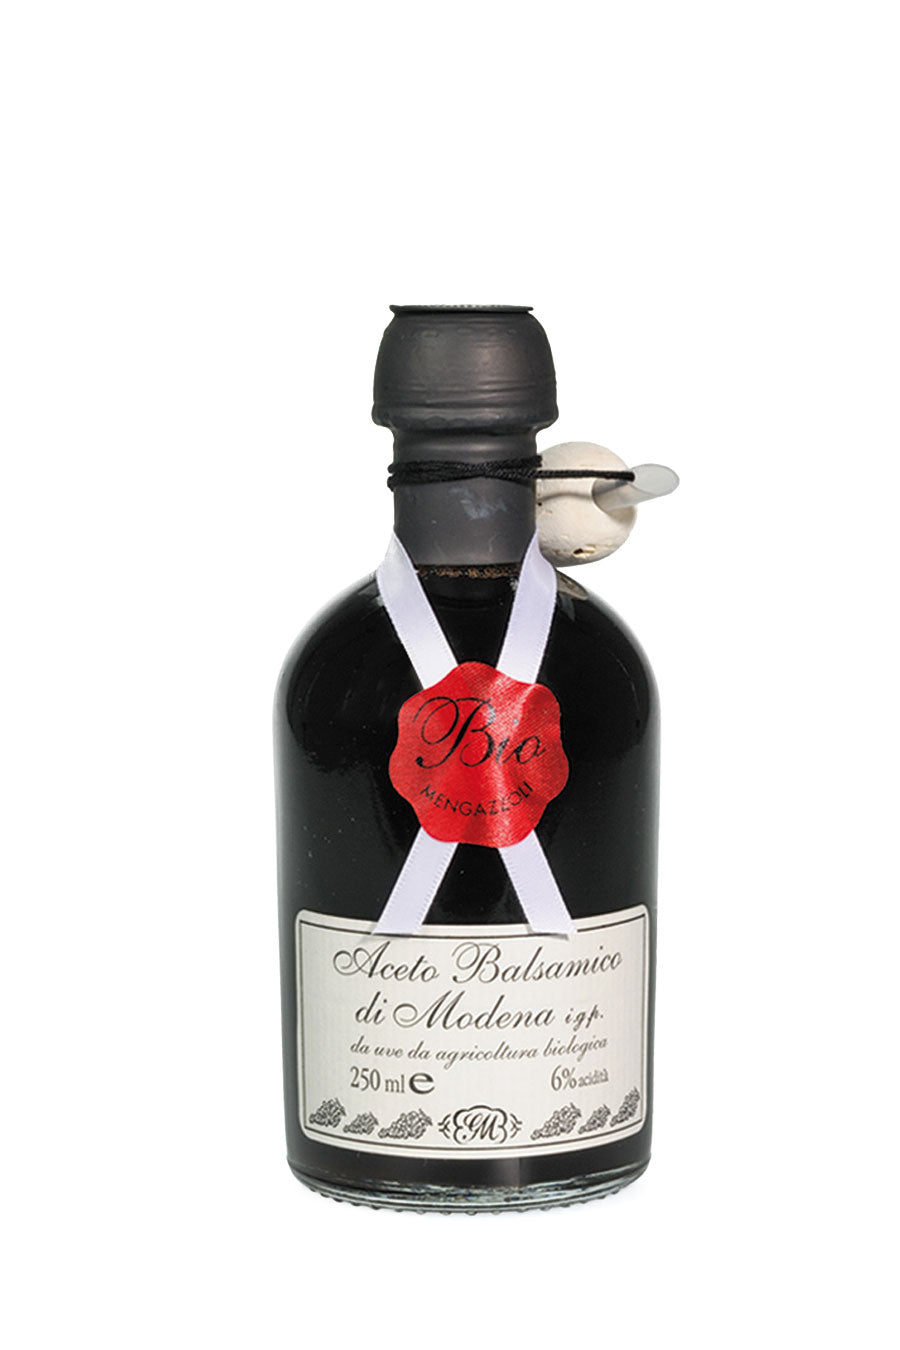 Organic Balsamic Vinegar of Modena I.G.P. Riserva 250ml